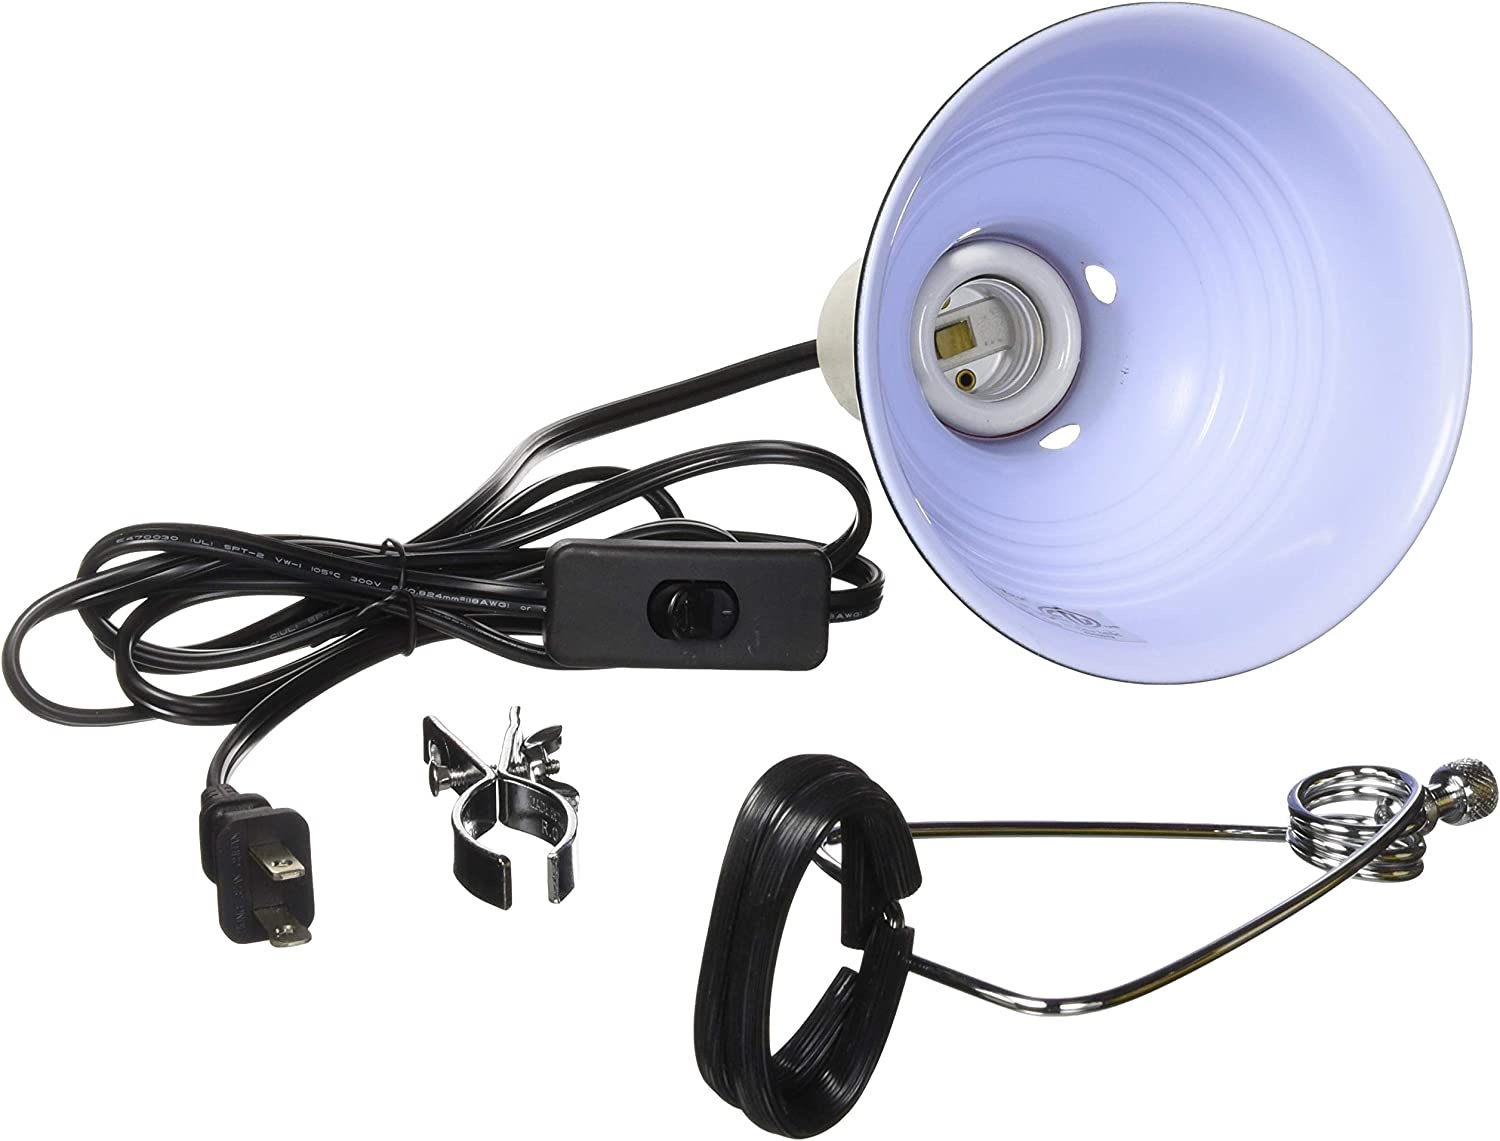 Fluker's Repta-Clamp Lamp with Switch for Reptiles: Pet Supplies